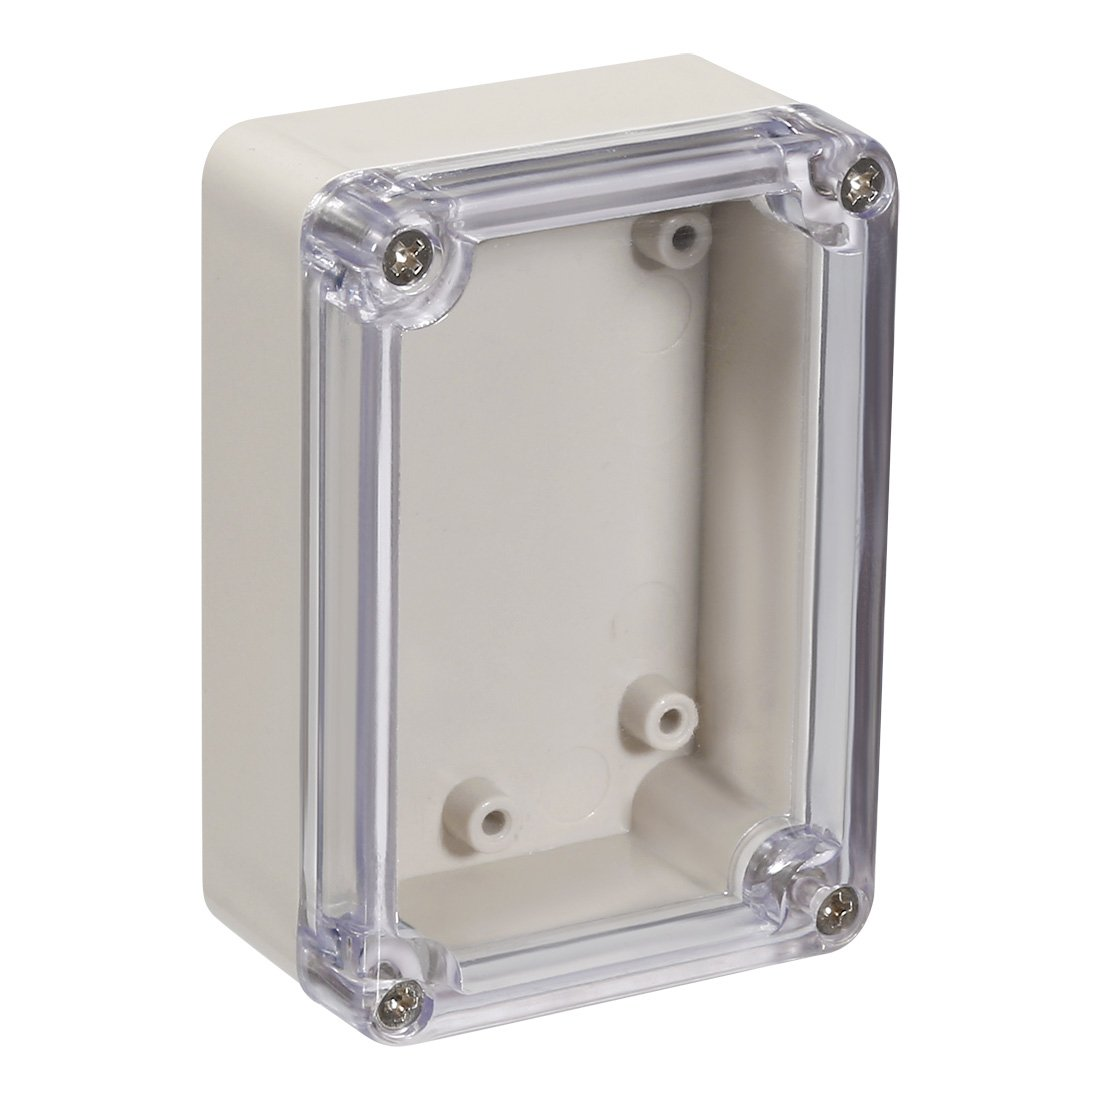 sourcing map 83x58x33mm//3.27x2.28x1.3inch Wateproof Electronic ABS Plastic DIY Junction Project Box Enclosure Case Outdoor//Indoor with Clear Cover